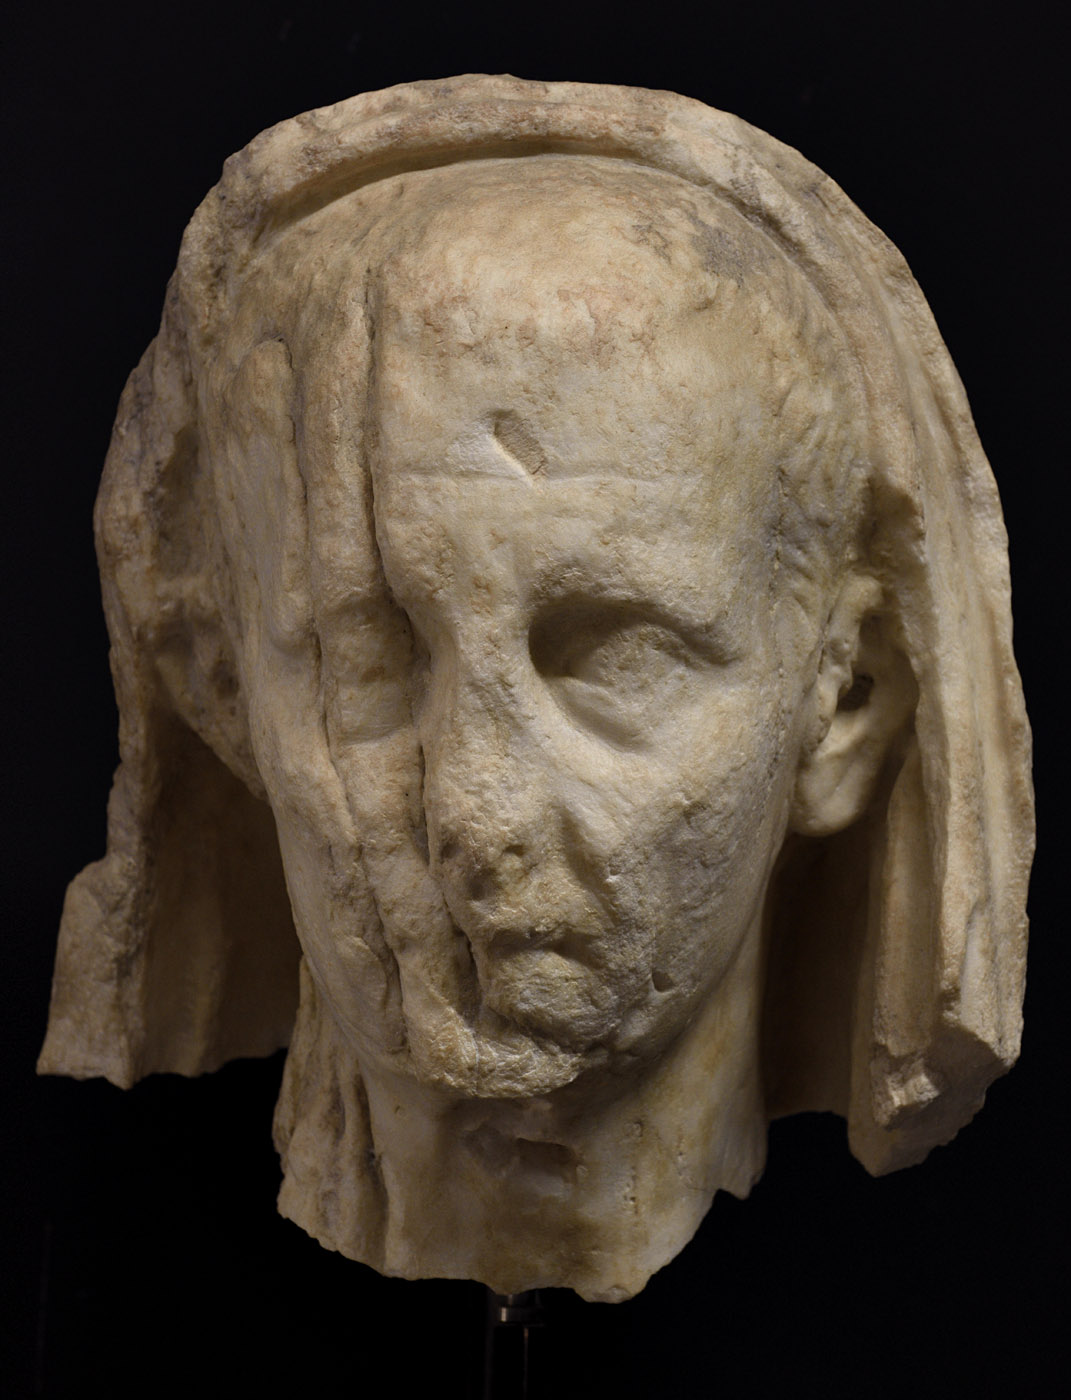 Veiled male head. Pentelic marble. Augustan period. Baia, Archaeological Museum of the Phlegraean Fields